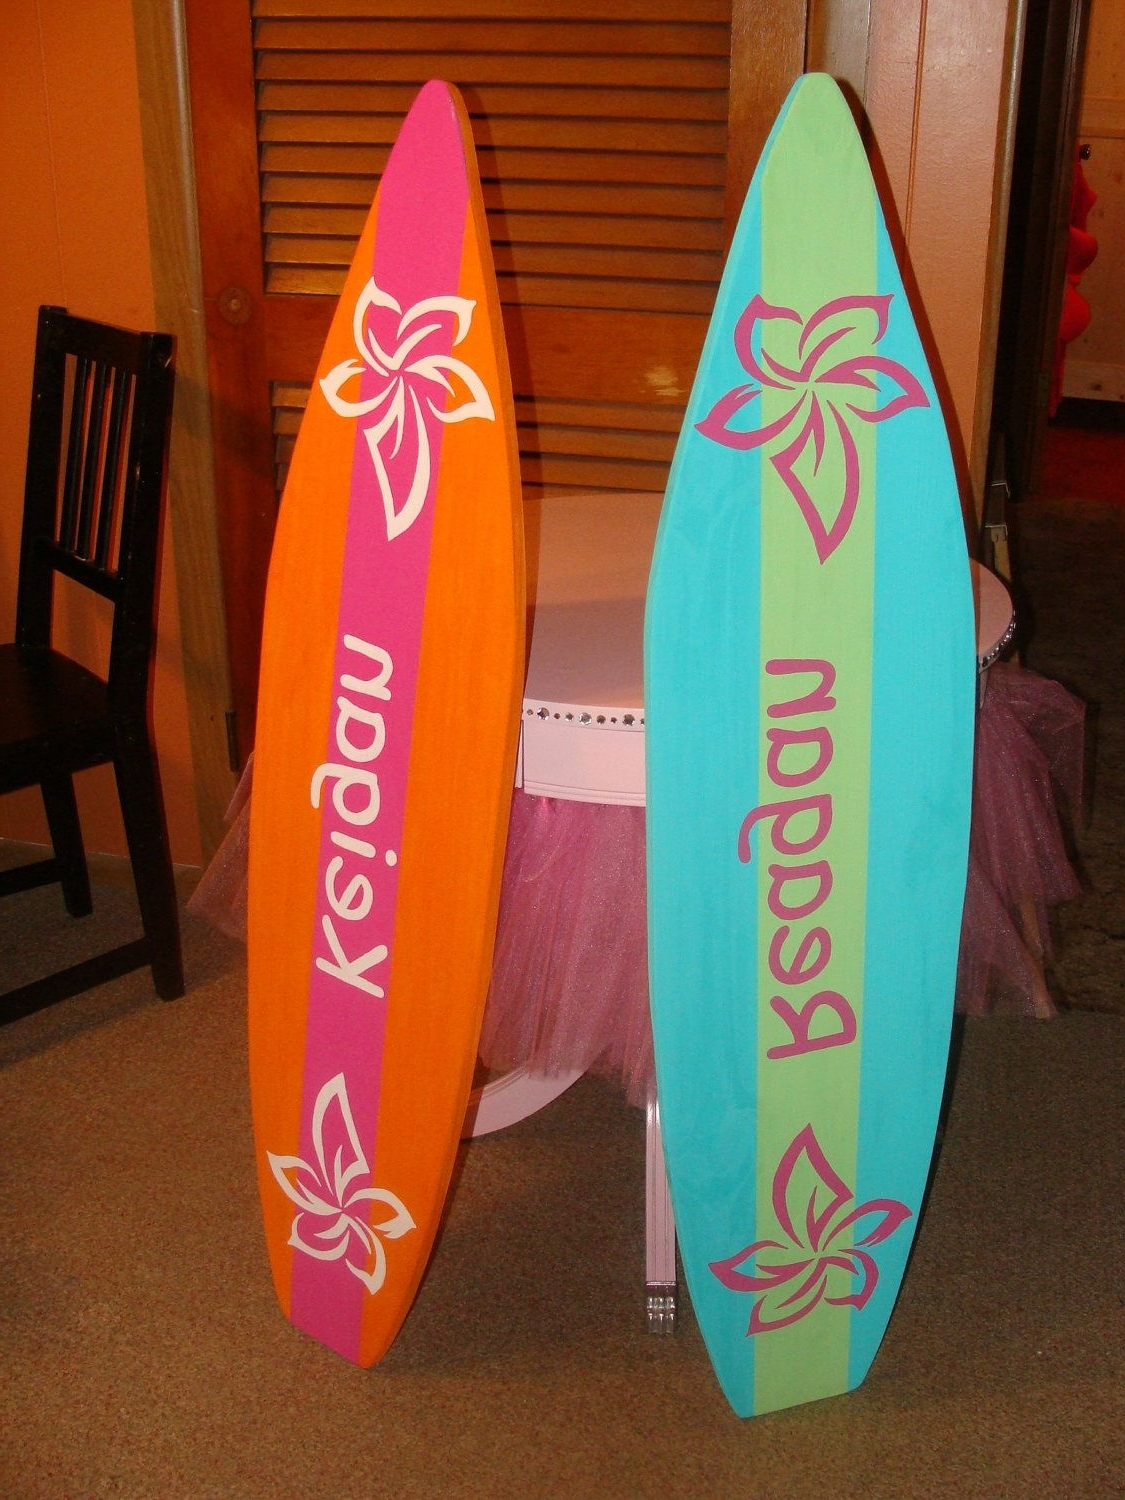 4 Foot Surfboard Wall Art, Beach Decor Wall Hanging (Will Throughout Most Current Surfboard Wall Art (View 2 of 15)